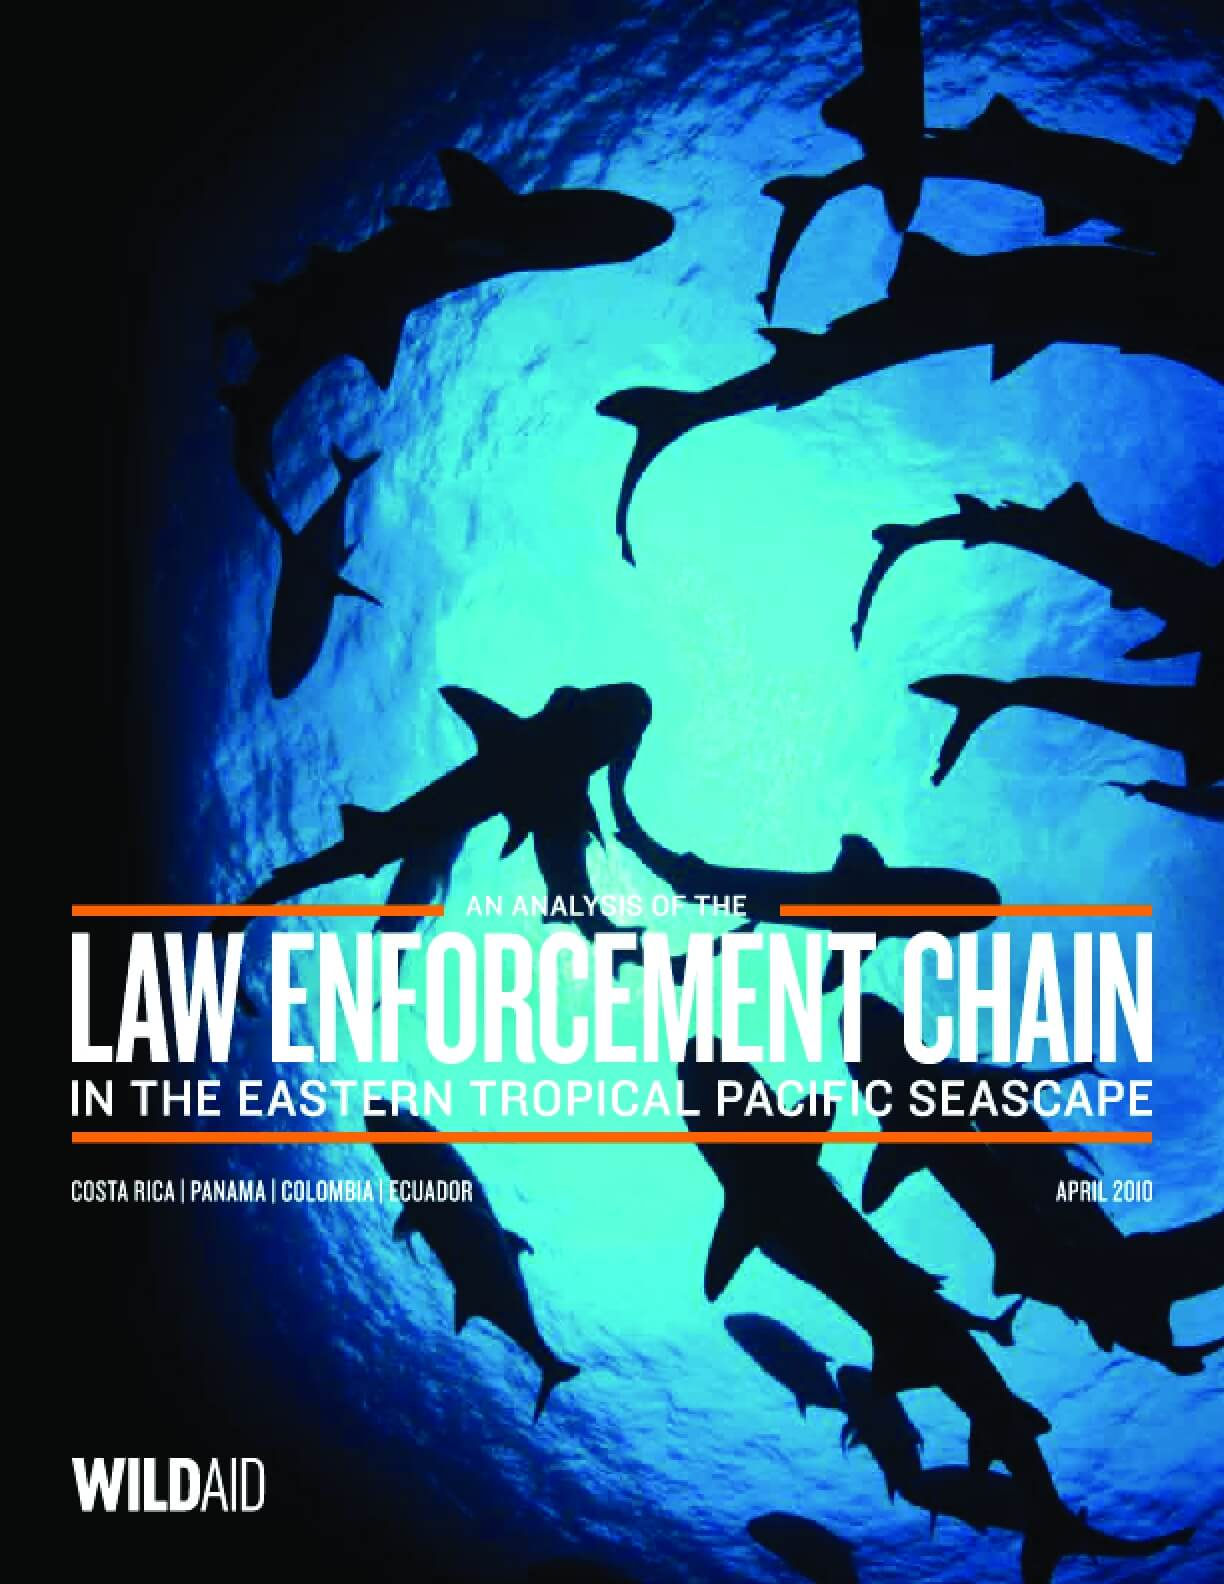 An Analysis of the Law Enforcement Chain in the Eastern Tropical Pacific Seascape, April 2010